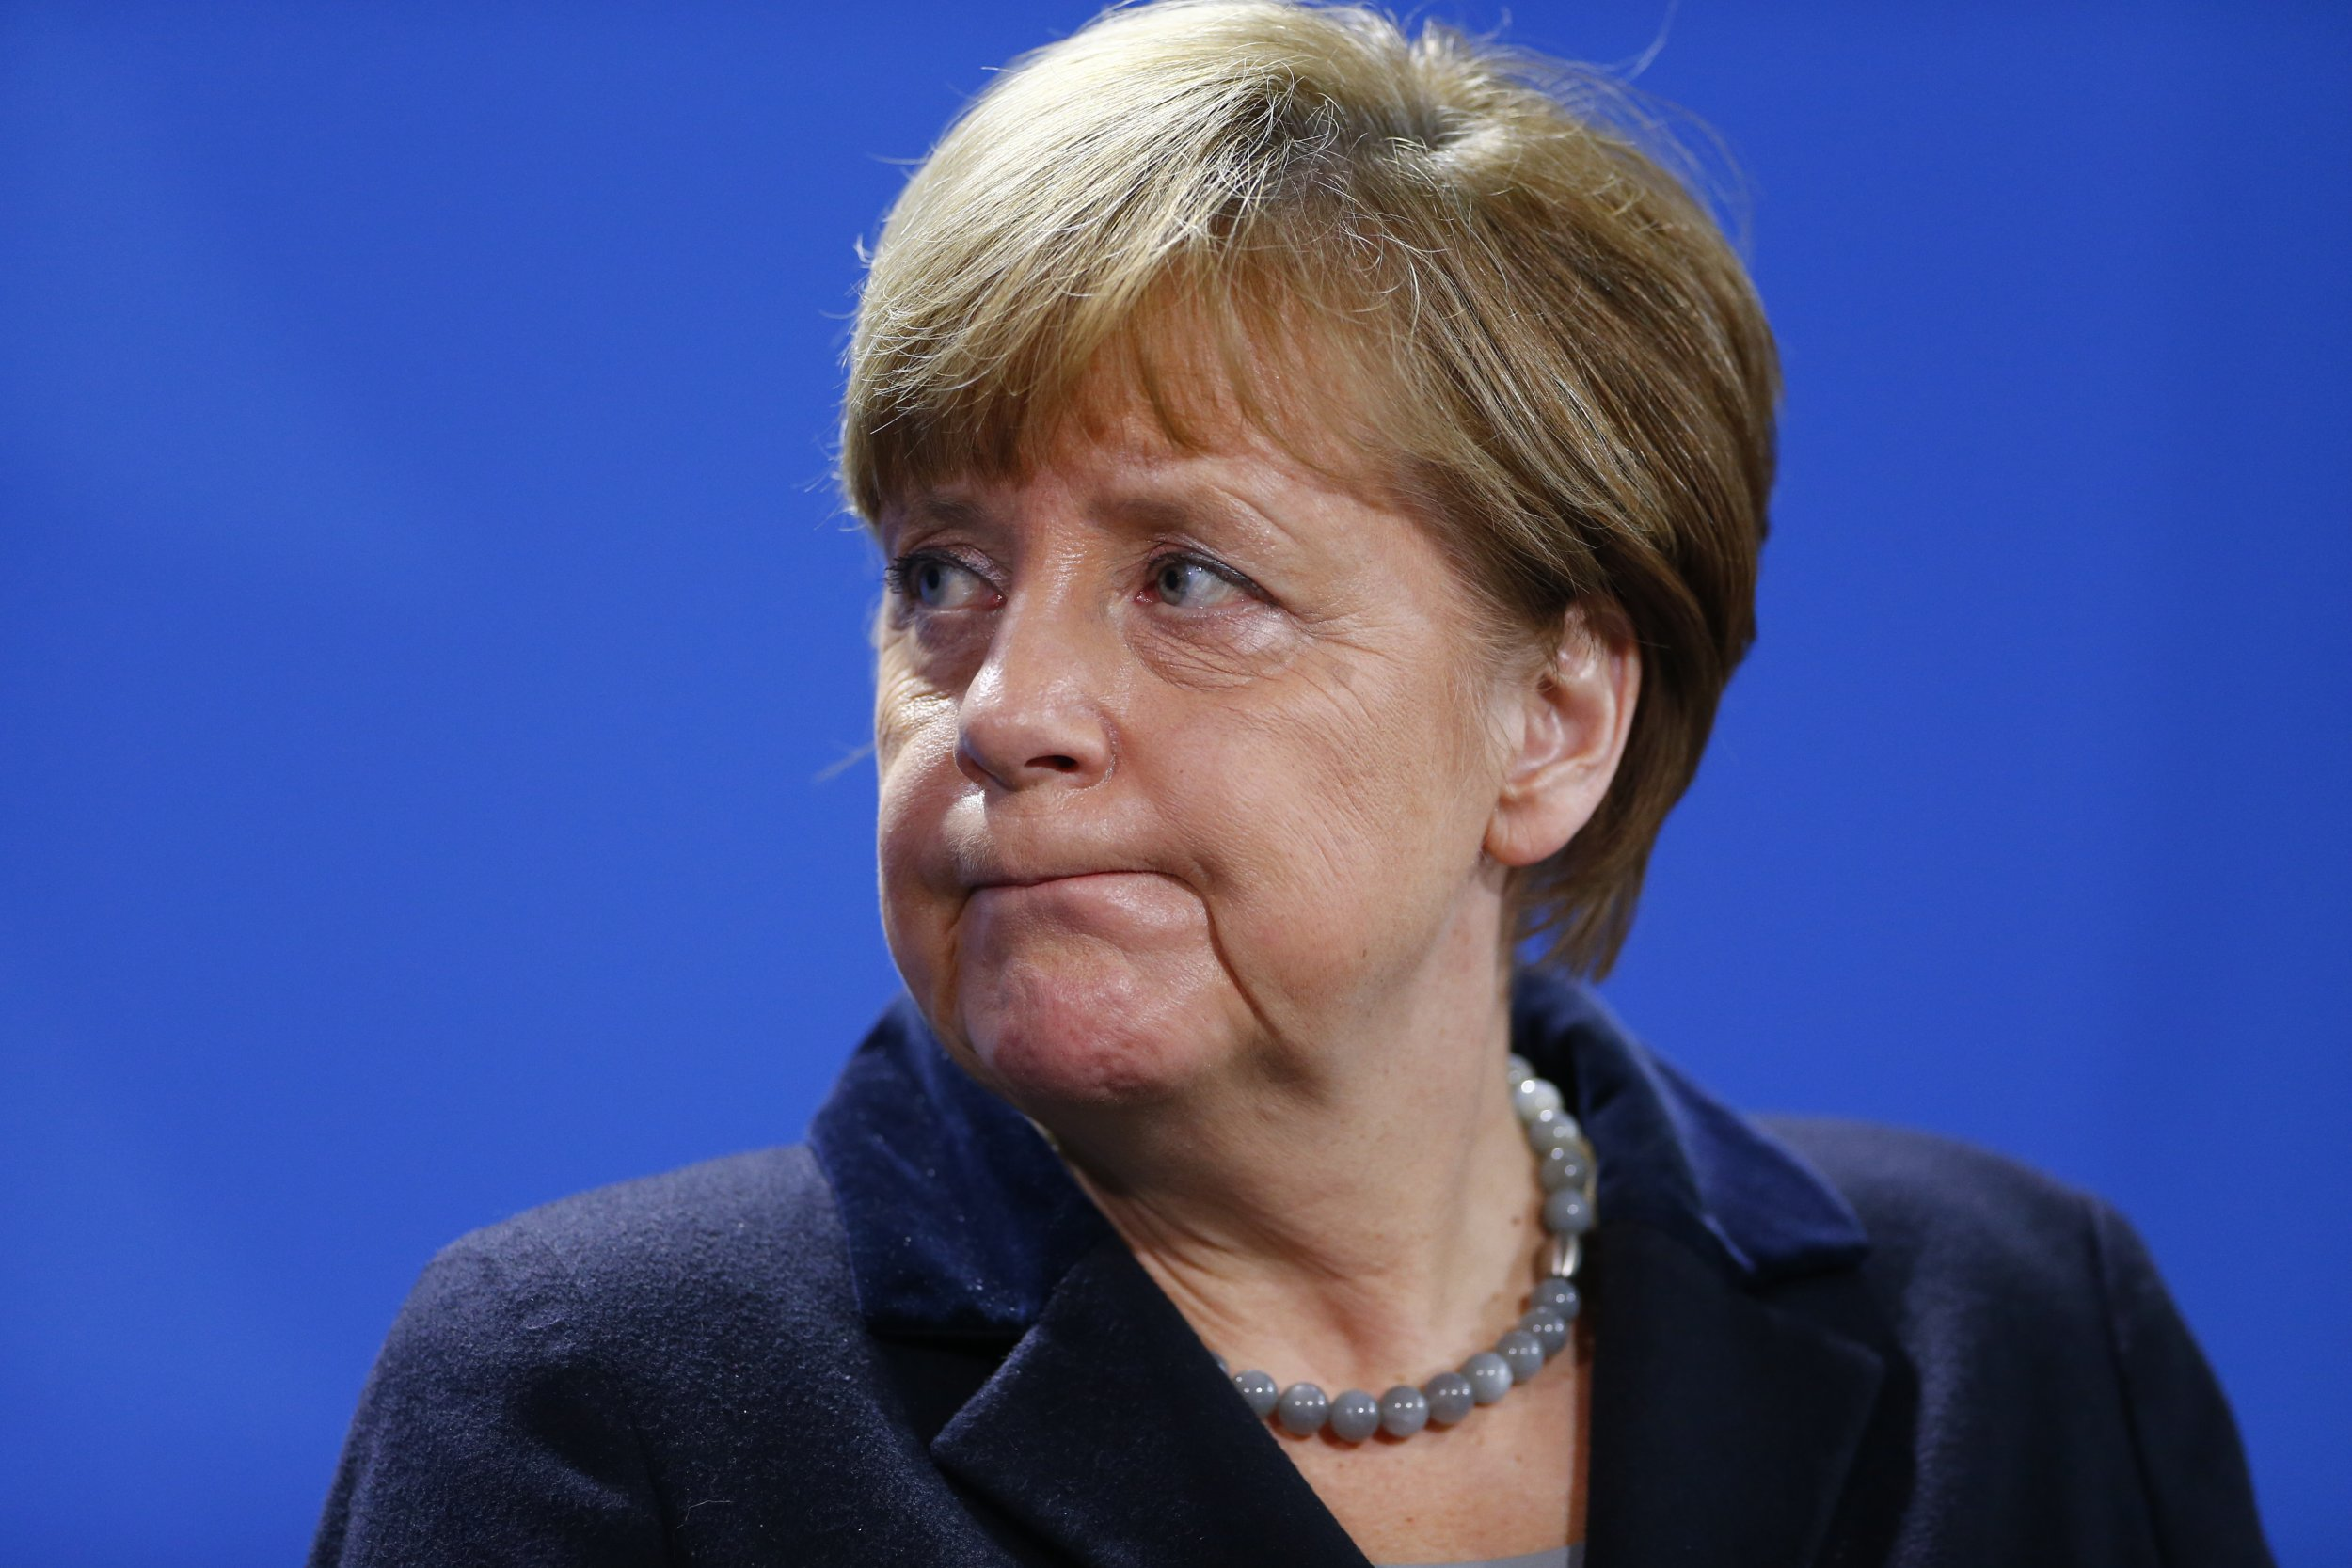 Angela Merkel Looks Exasperated at a News Conference